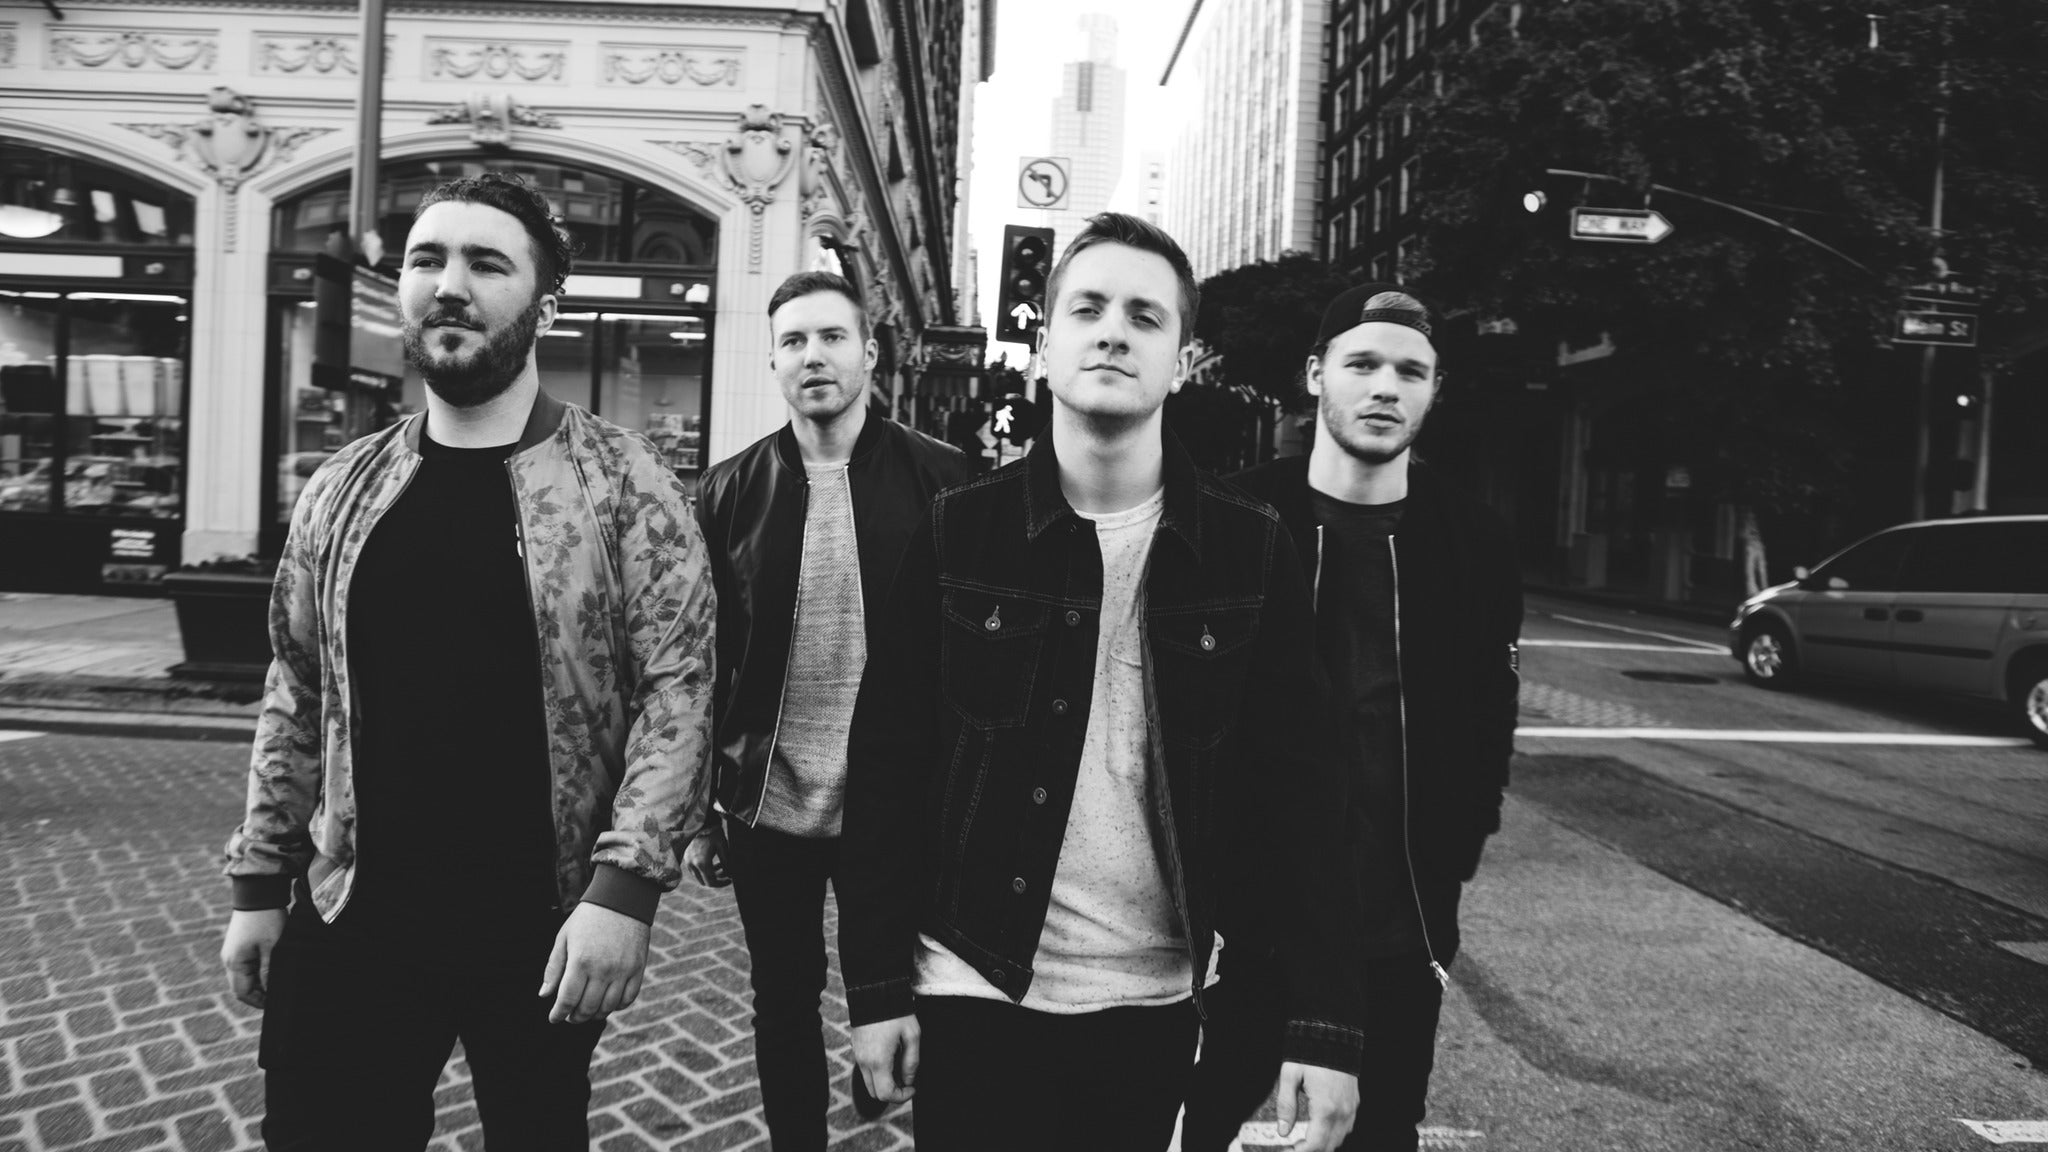 I PREVAIL: REBEL WITHOUT A CLAUS TOUR 2016 at Chameleon Club